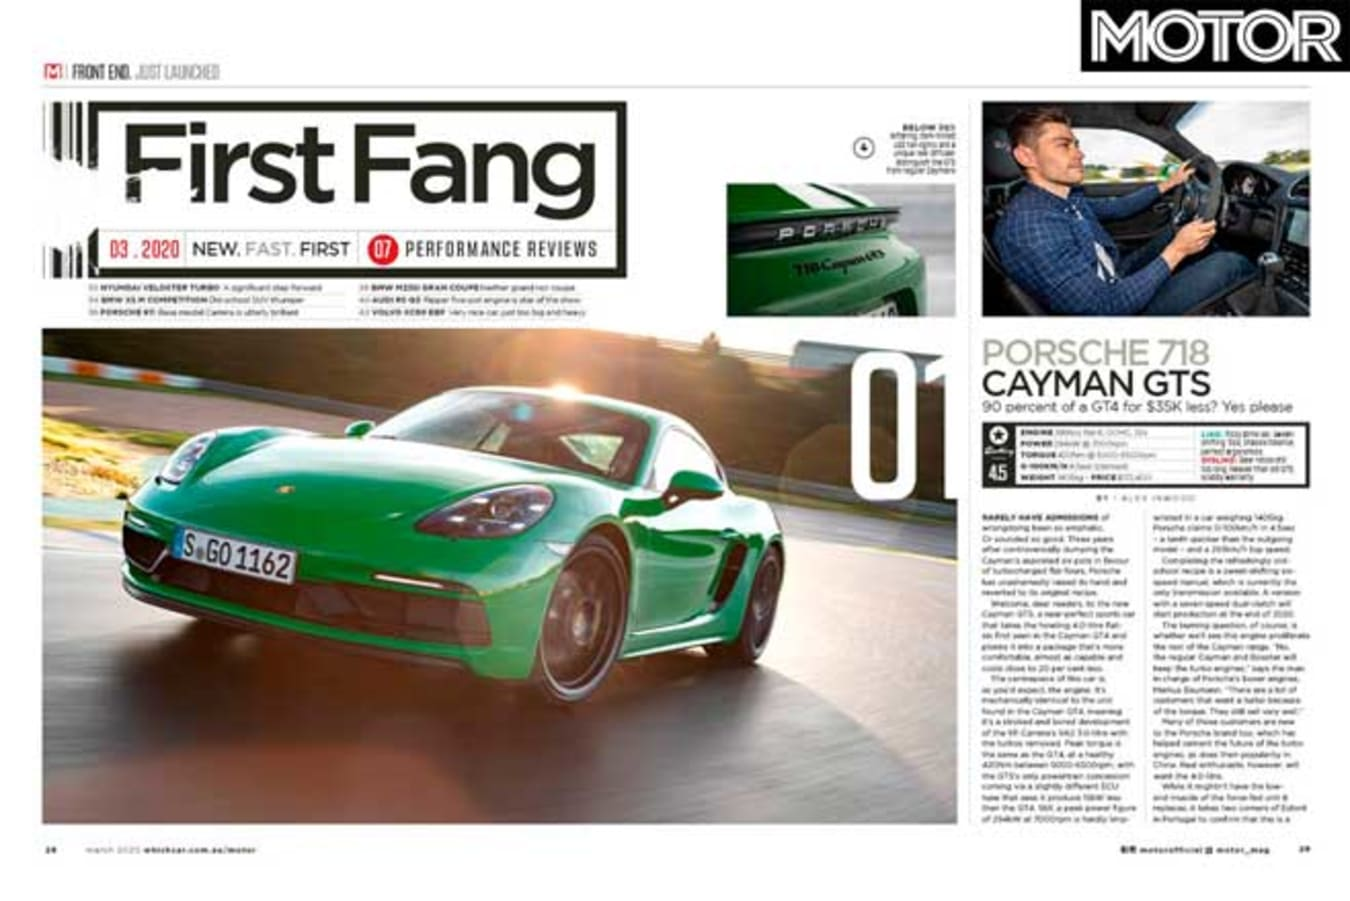 MOTOR Magazine March 2020 Issue First Drive Jpg